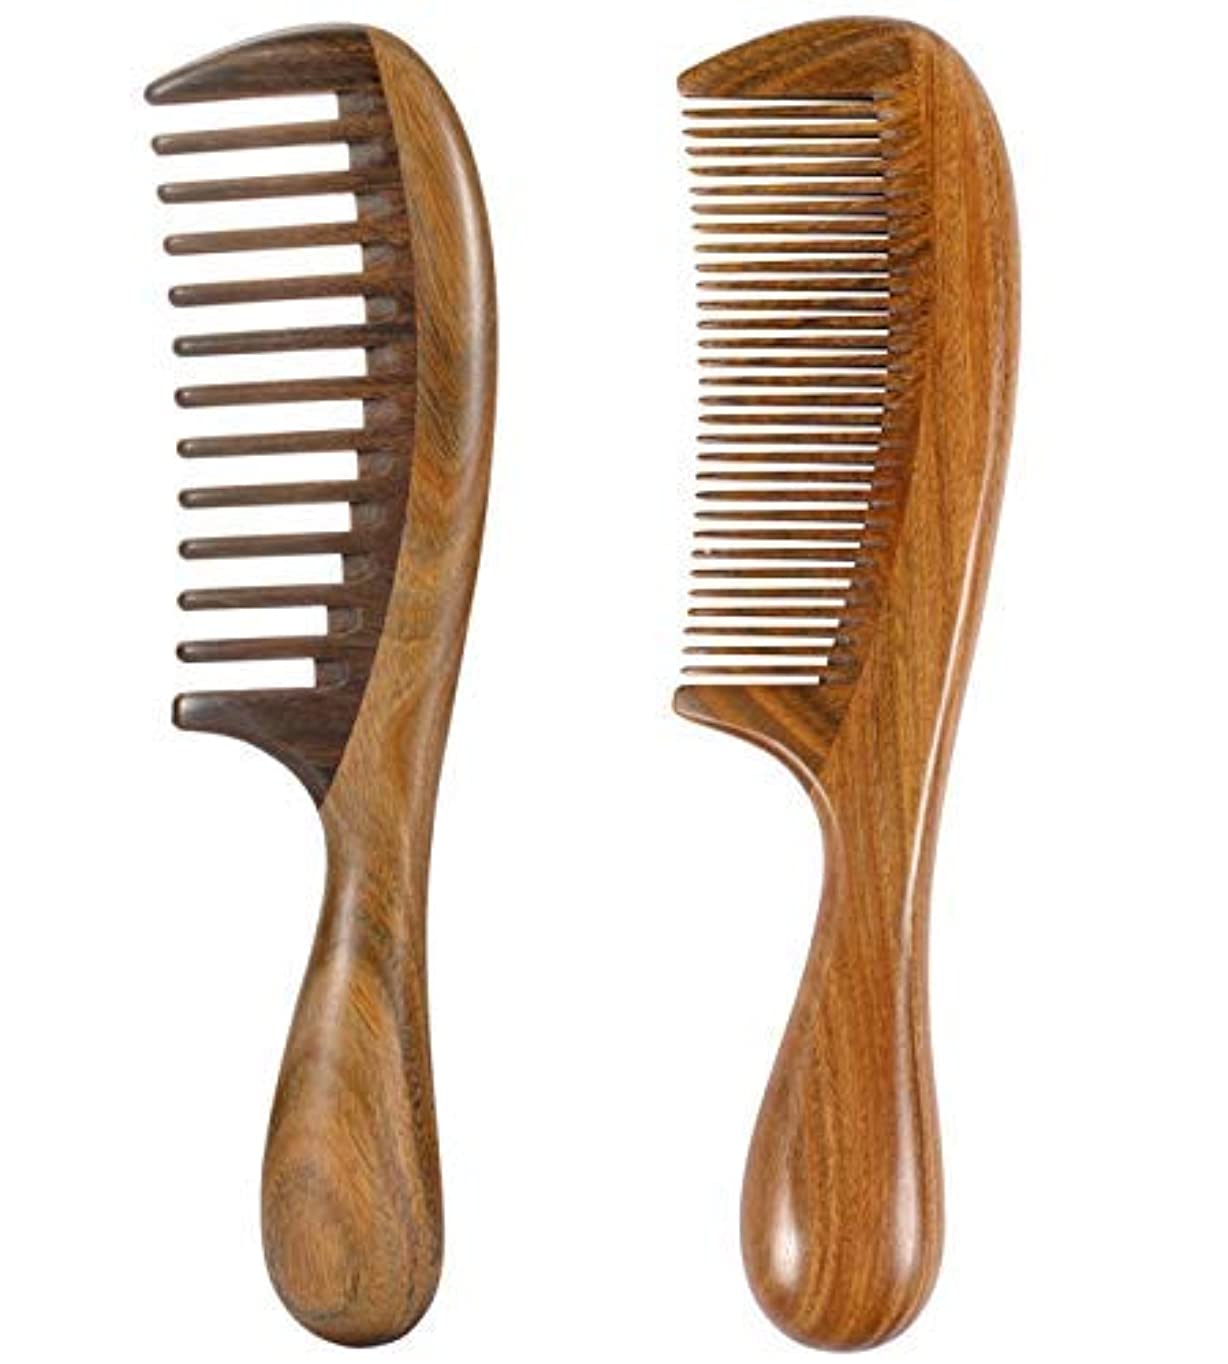 パイル区シェードiPang 2pcs Wooden Hair Comb Wide Tooth Comb and Find Tooth Comb Detangling Sandalwood Comb [並行輸入品]